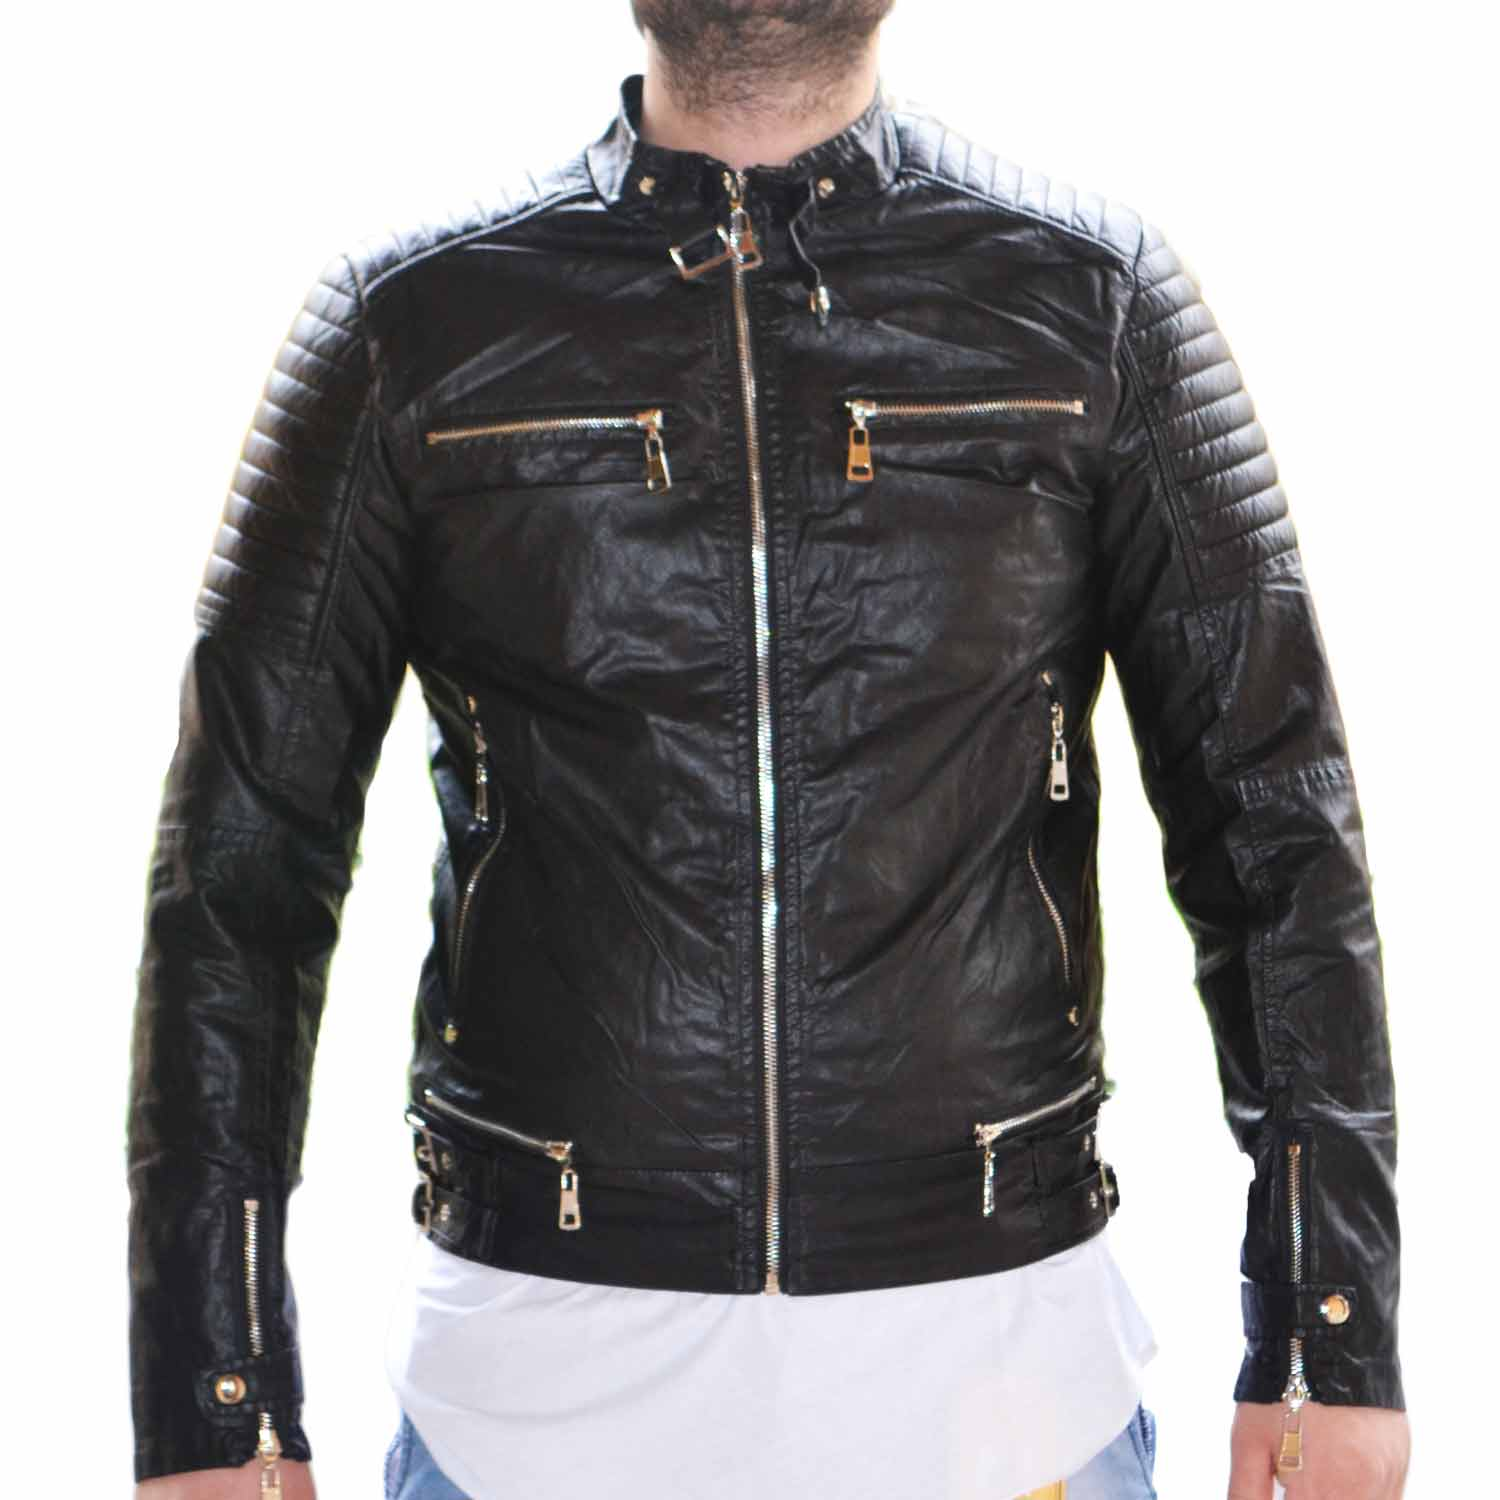 huge selection of 15118 76d72 Giubbotto Giubbino Giacca Bomber Chiodo Uomo Slim Fit fibbie accessori nero  made in italy uomo giubbini in pelle made in italy | MaluShoes